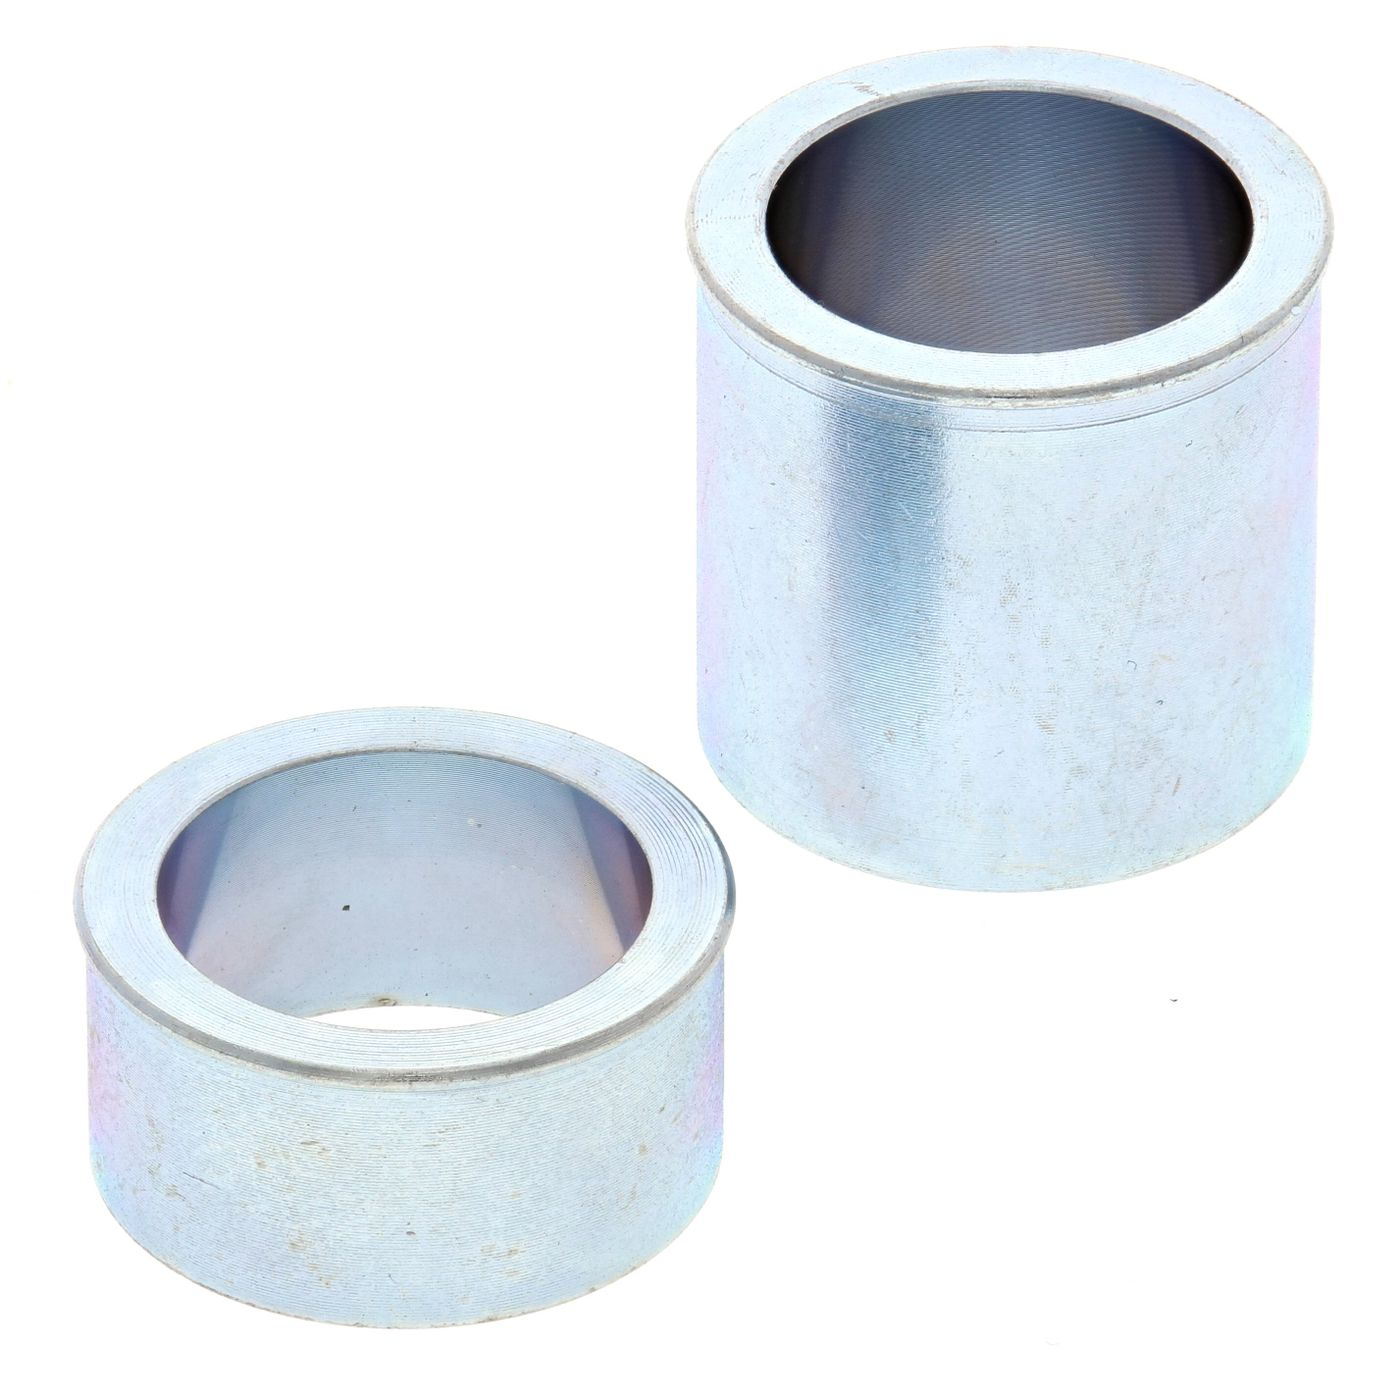 Wrp Front Wheel Spacer Kits - WRP111005 image